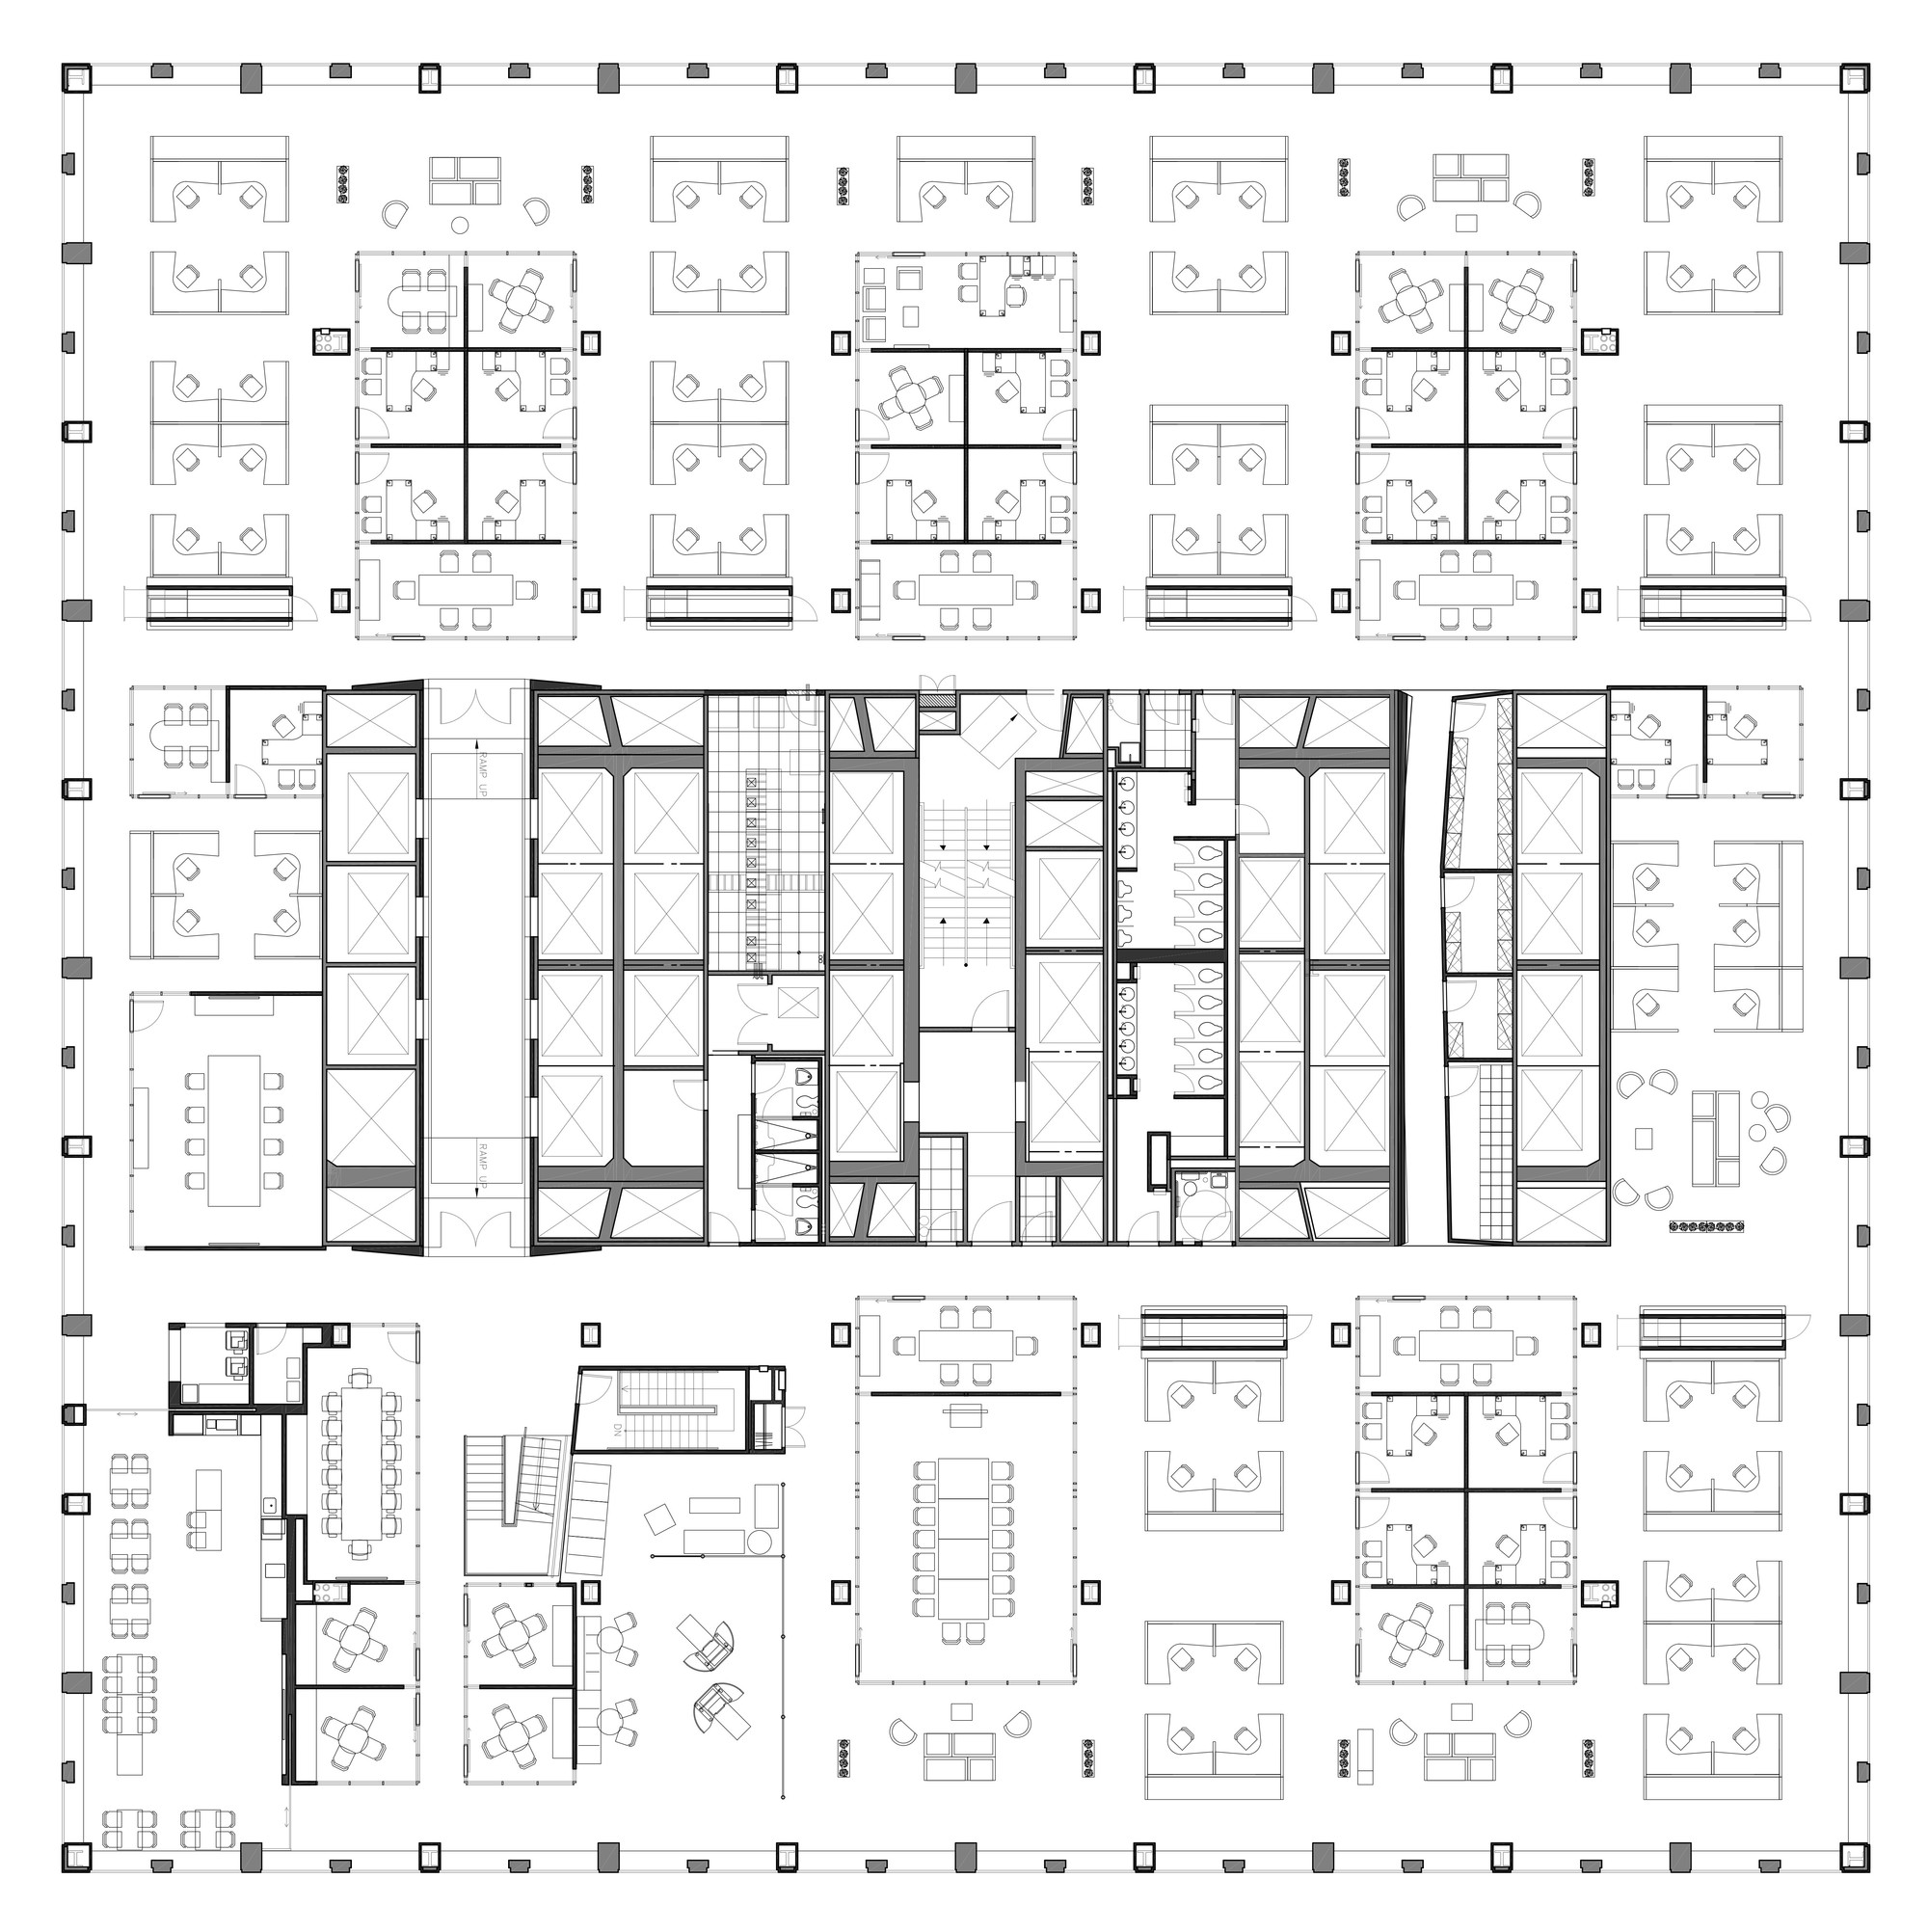 Company Floor Plan Part - 16: Midtown Financial Company / A + I Architecture. 12 / 14. Seventh Floor Plan